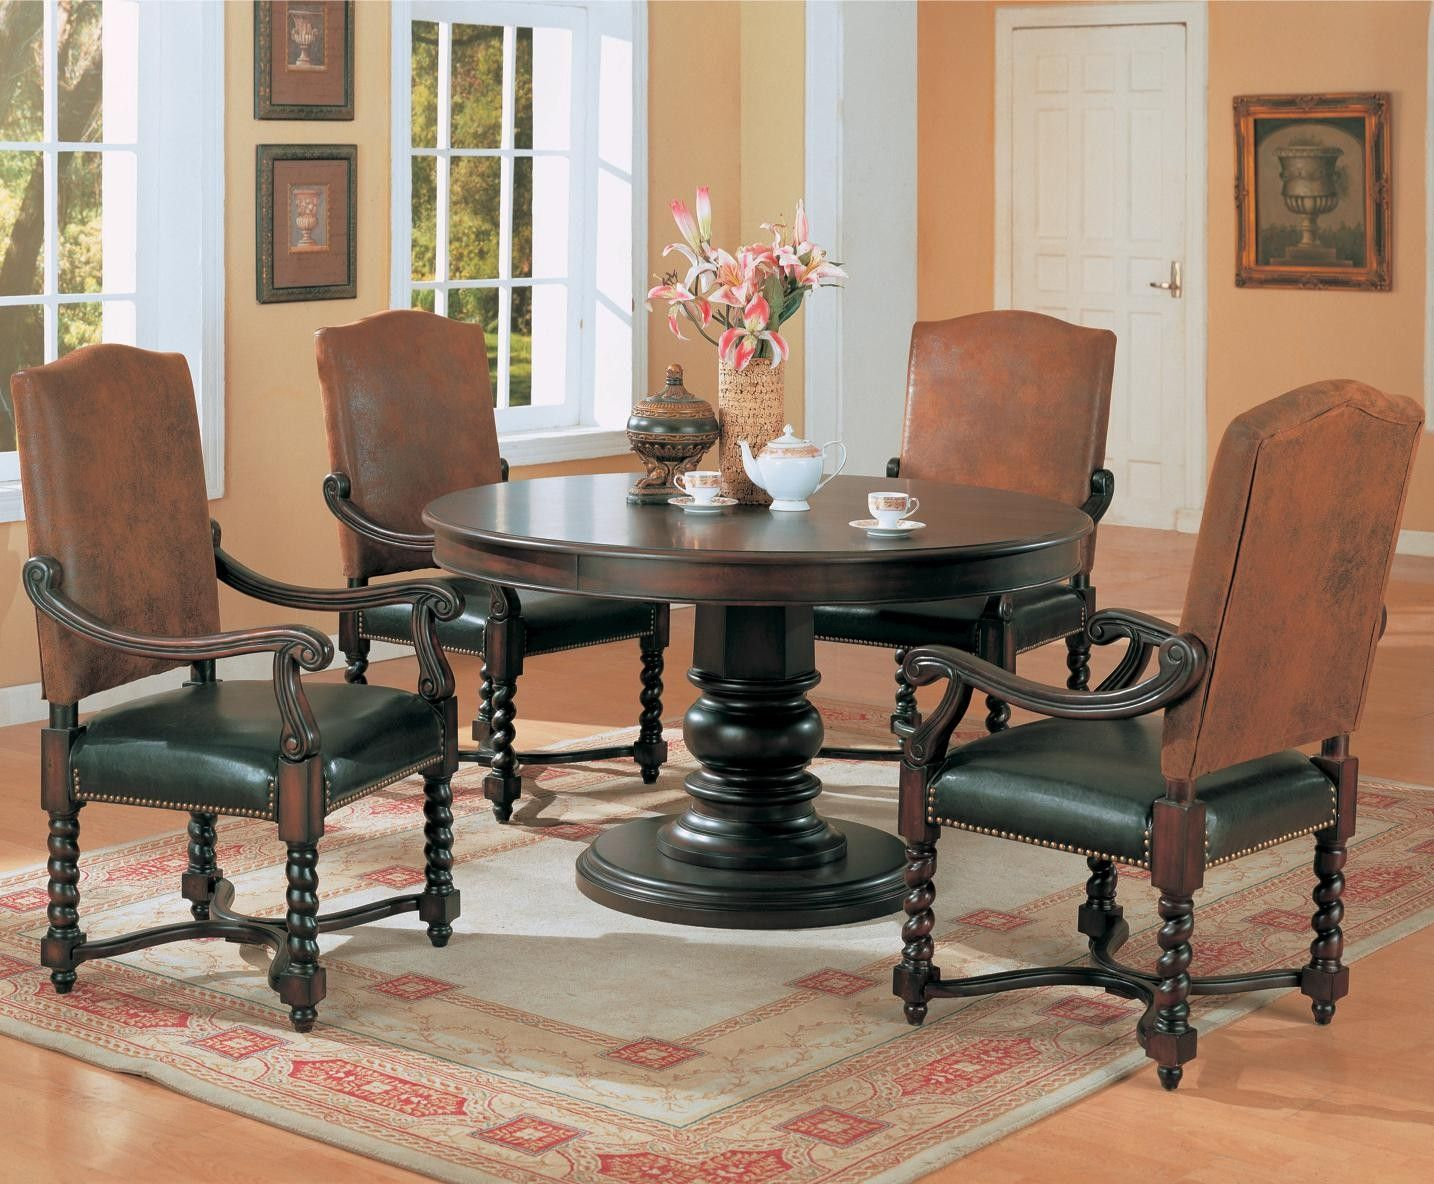 Buy Riverside Dining Room Set With Round Pedestal Semiformal Glamorous Formal Dining Room Table Decorating Ideas Inspiration Design